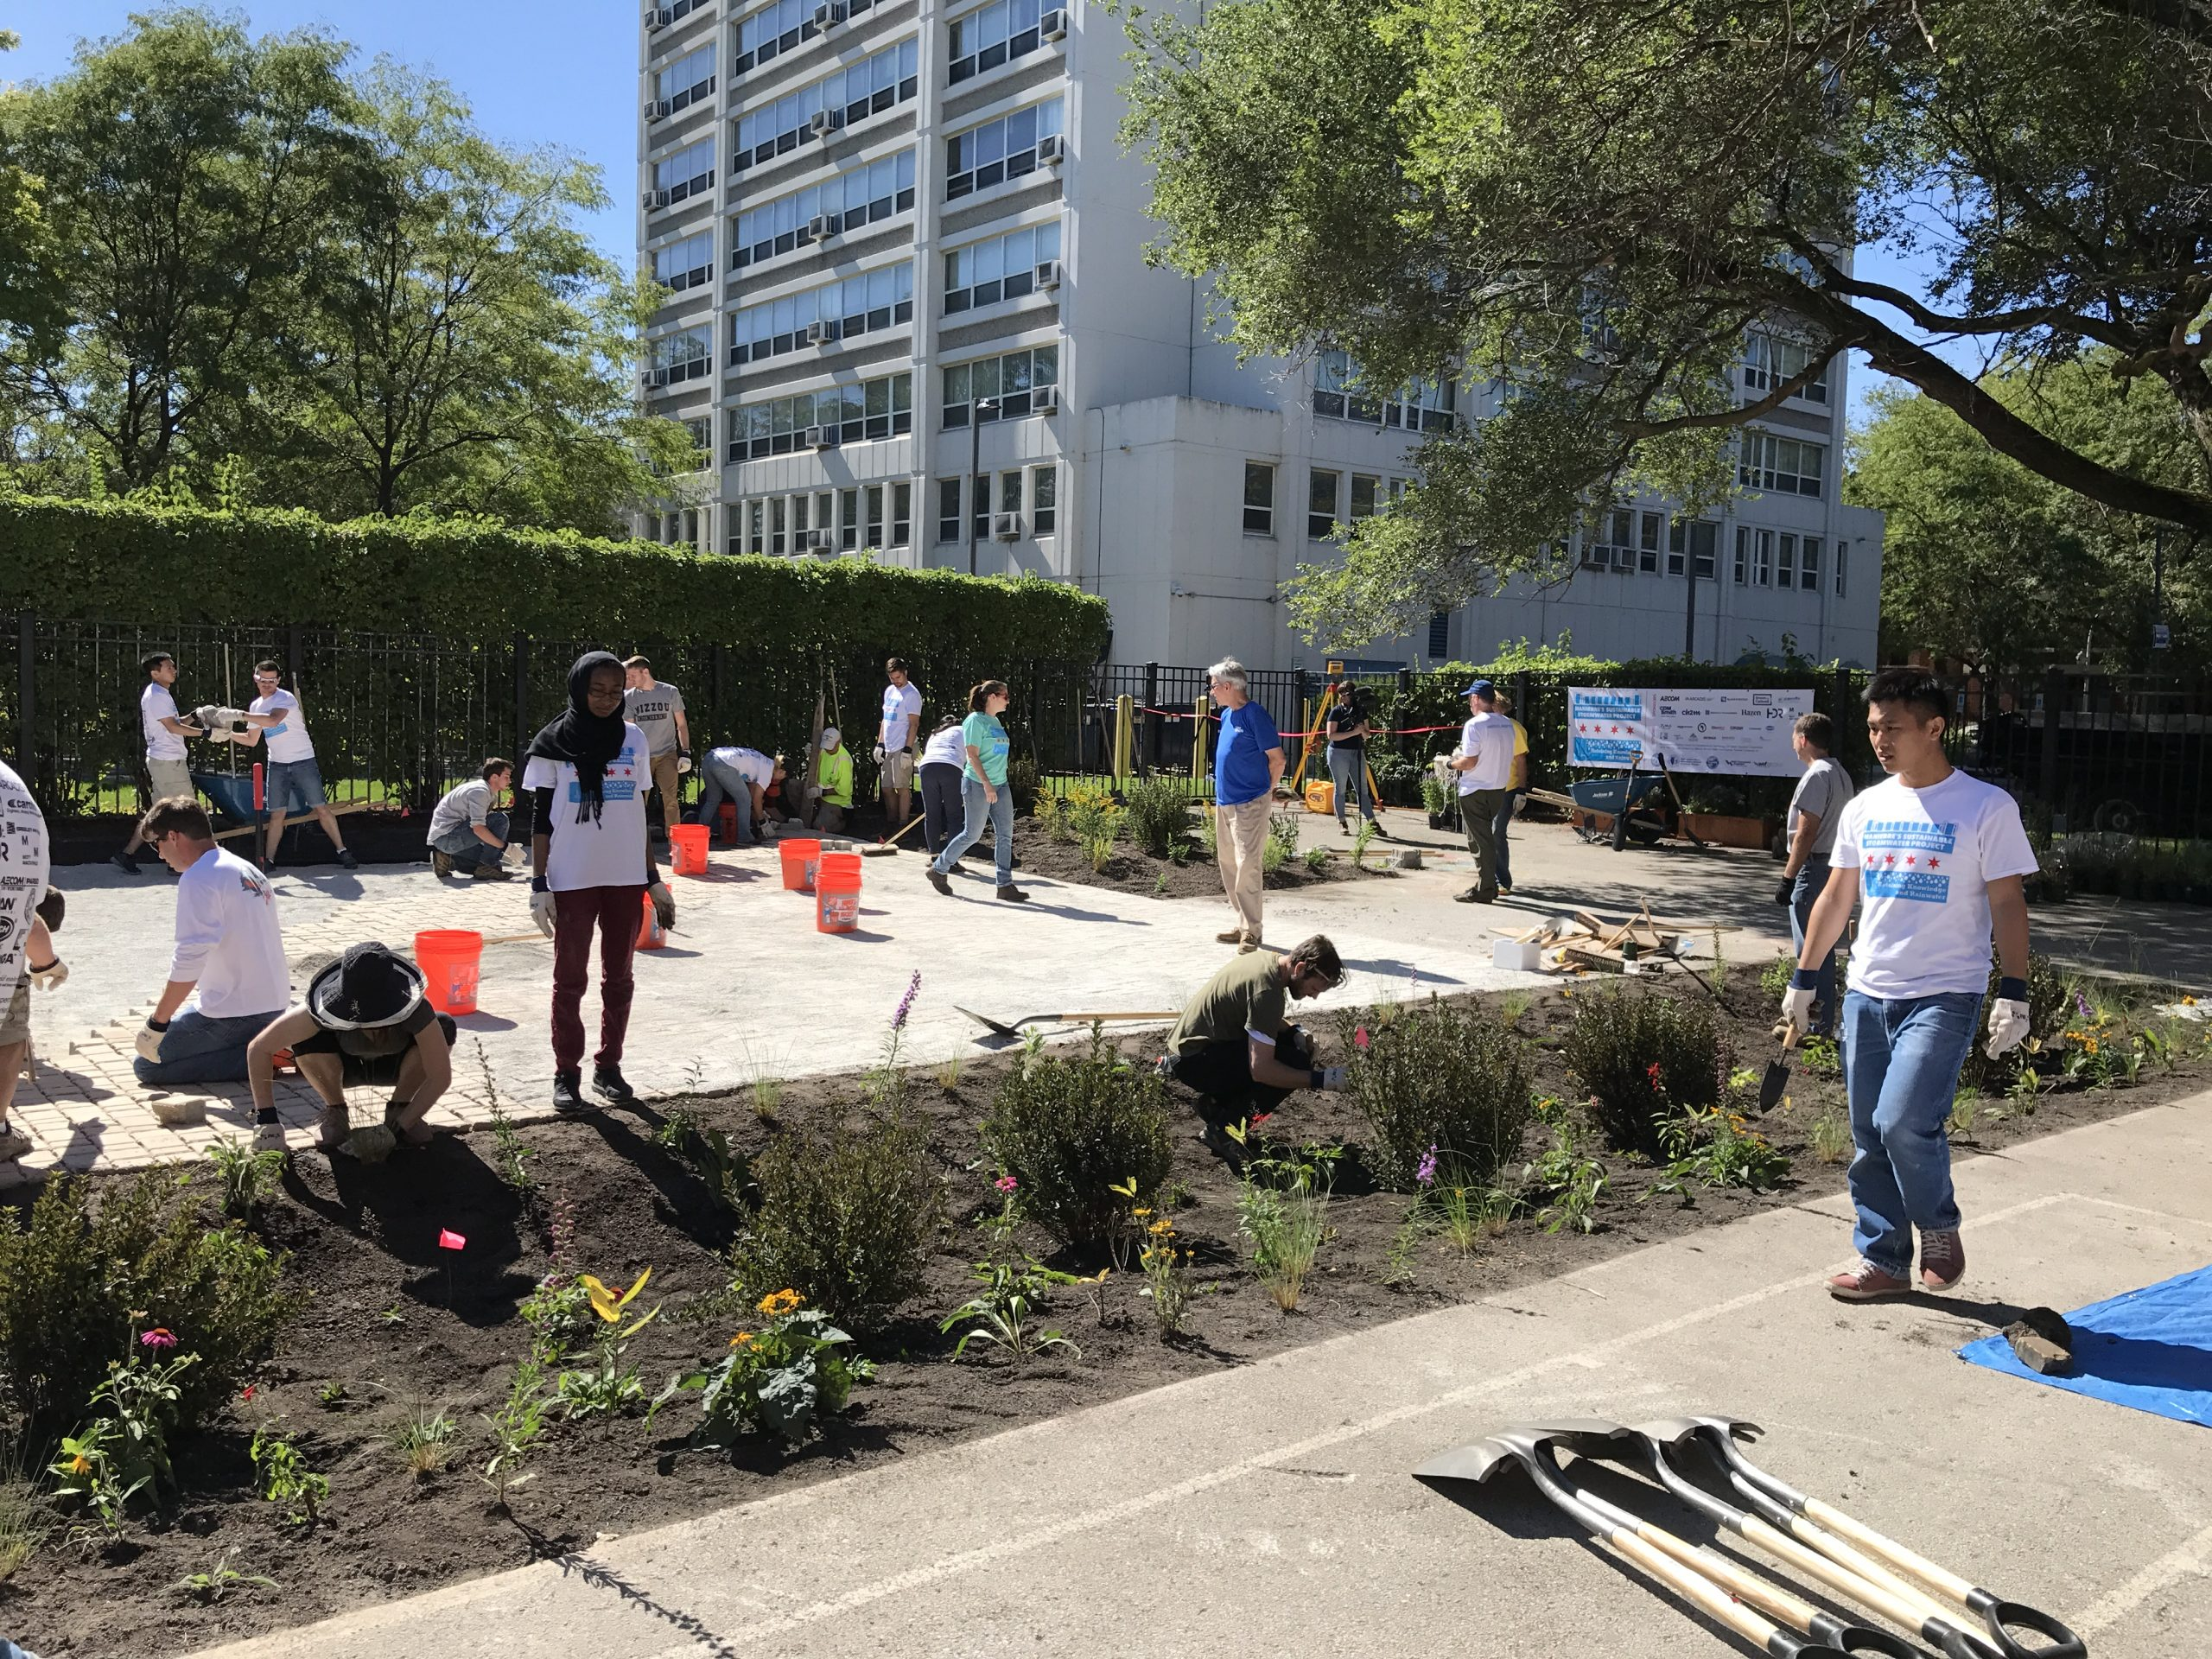 Study: Urbanites Value Green Infrastructure Benefits